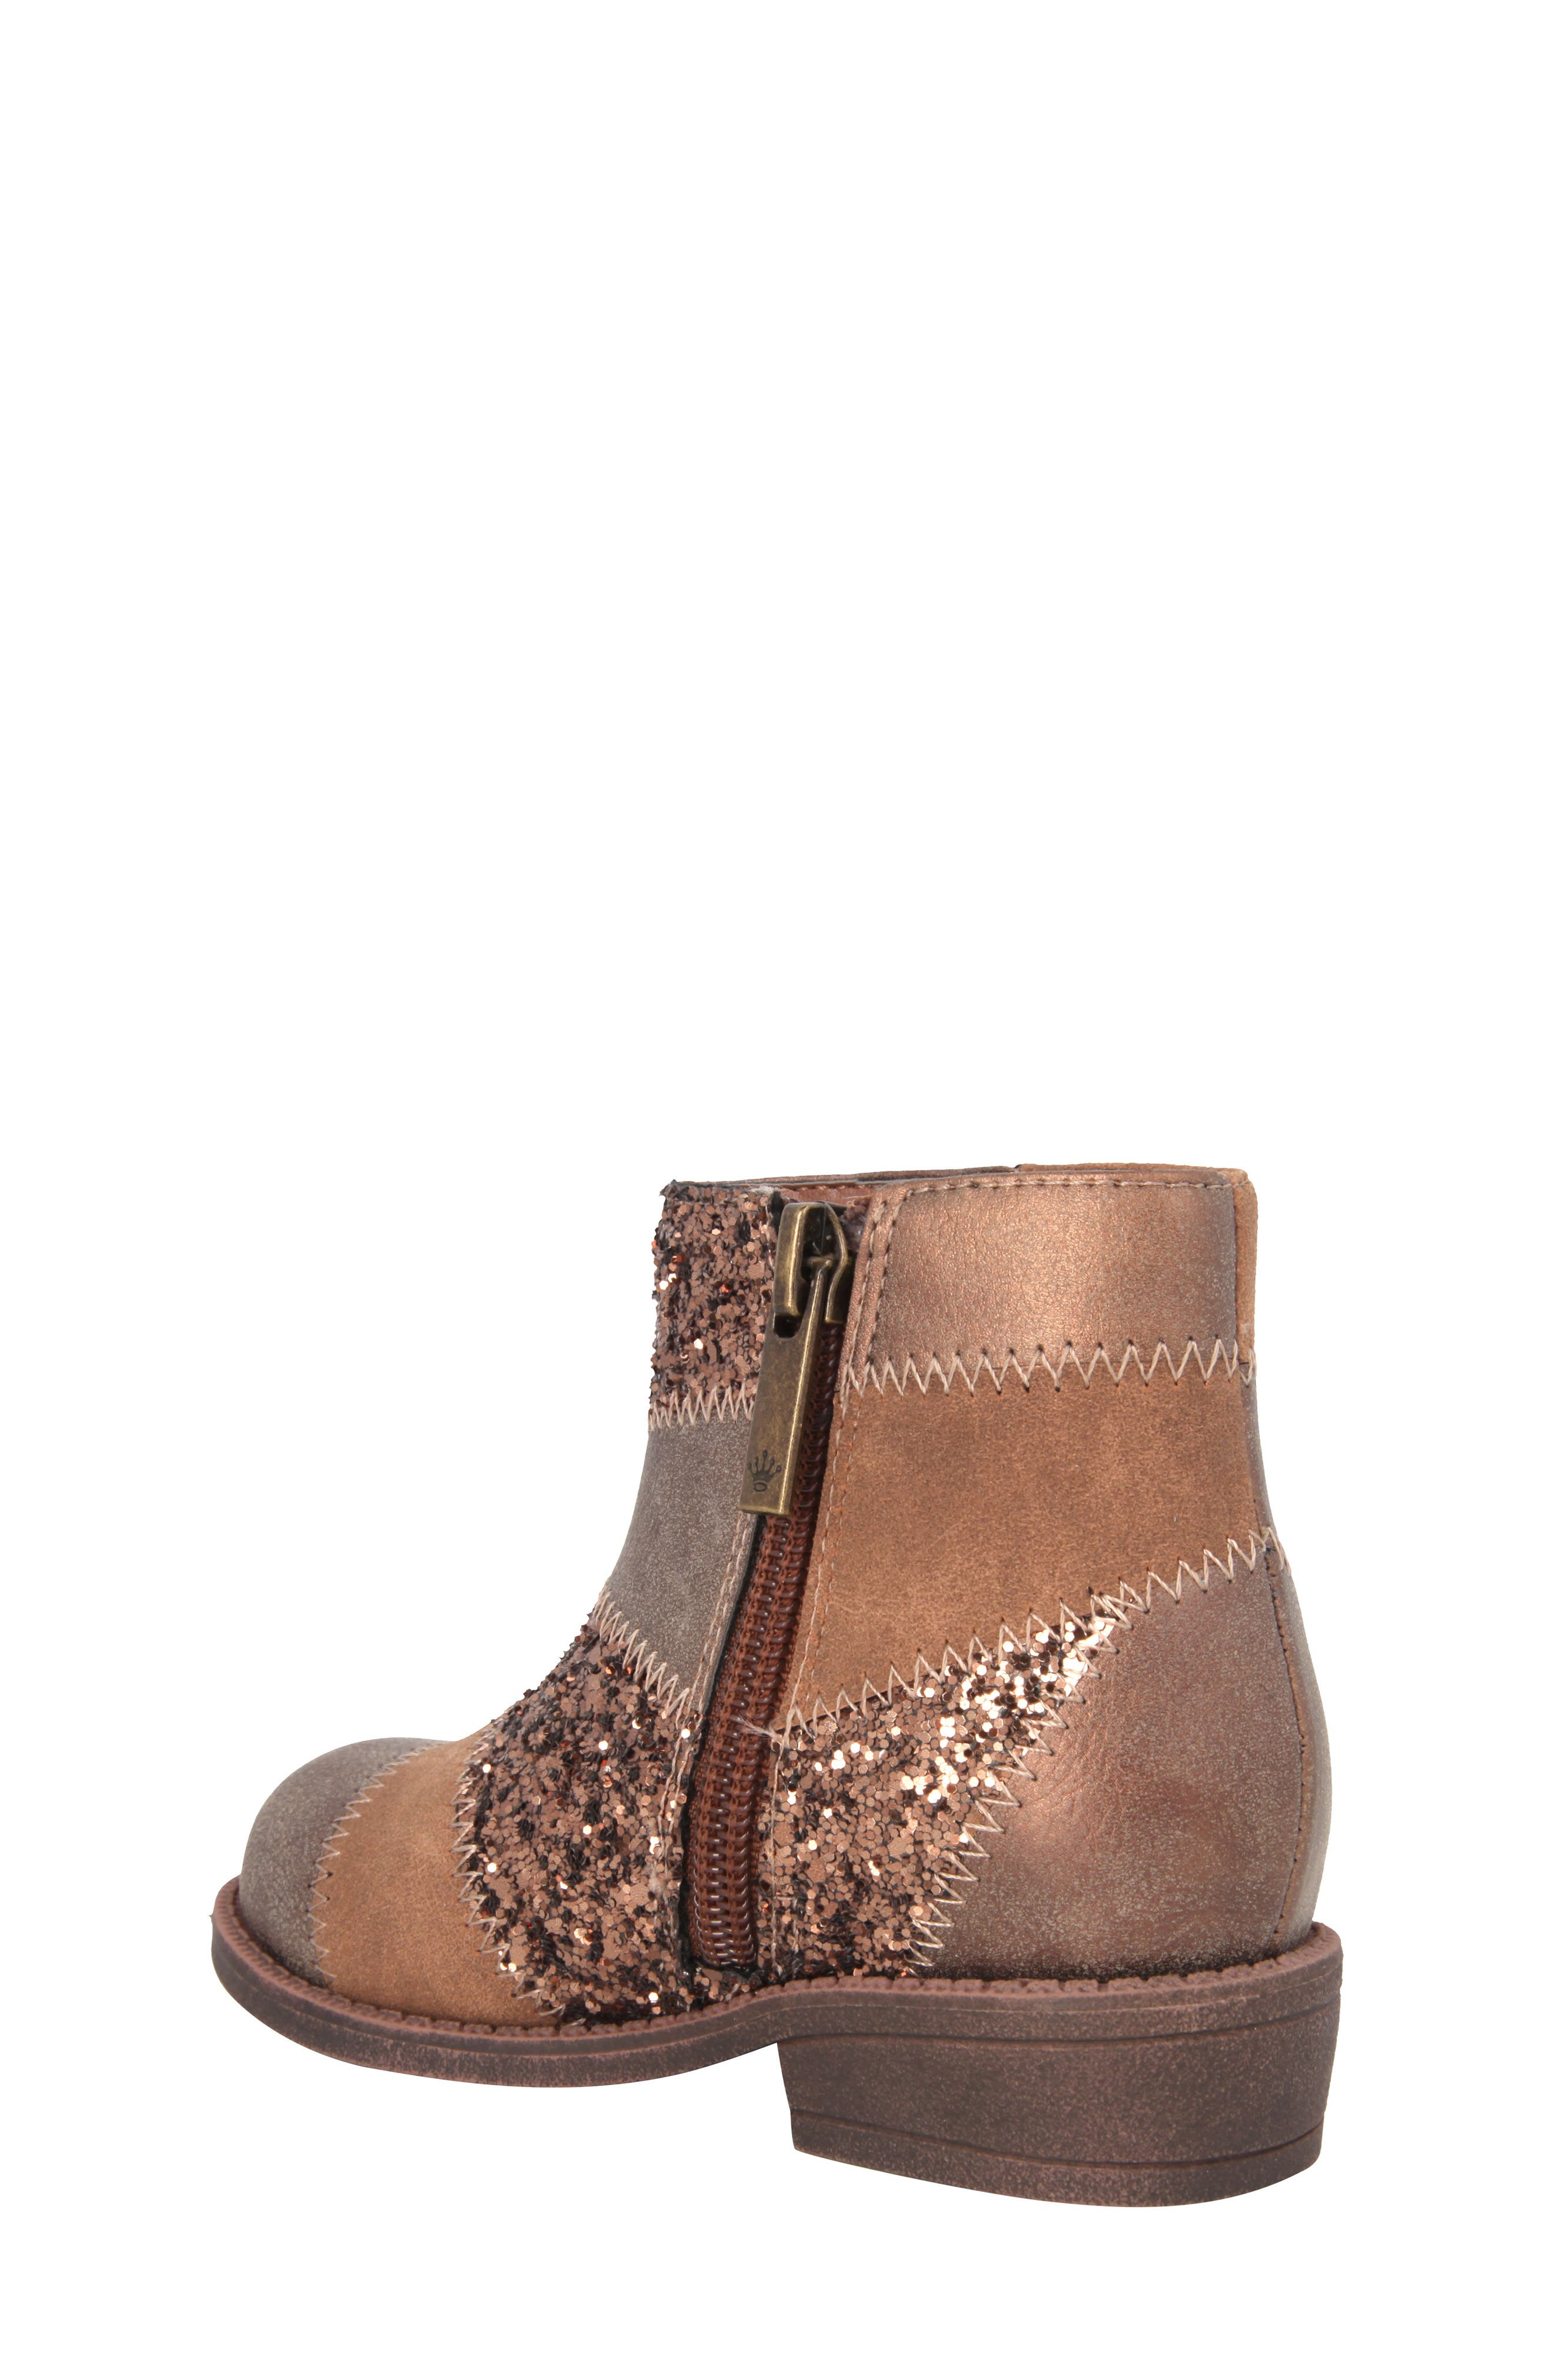 Alternate Image 2  - Nina Ines Glittery Patchwork Bootie (Walker, Toddler, Little Kid & Big Kid)